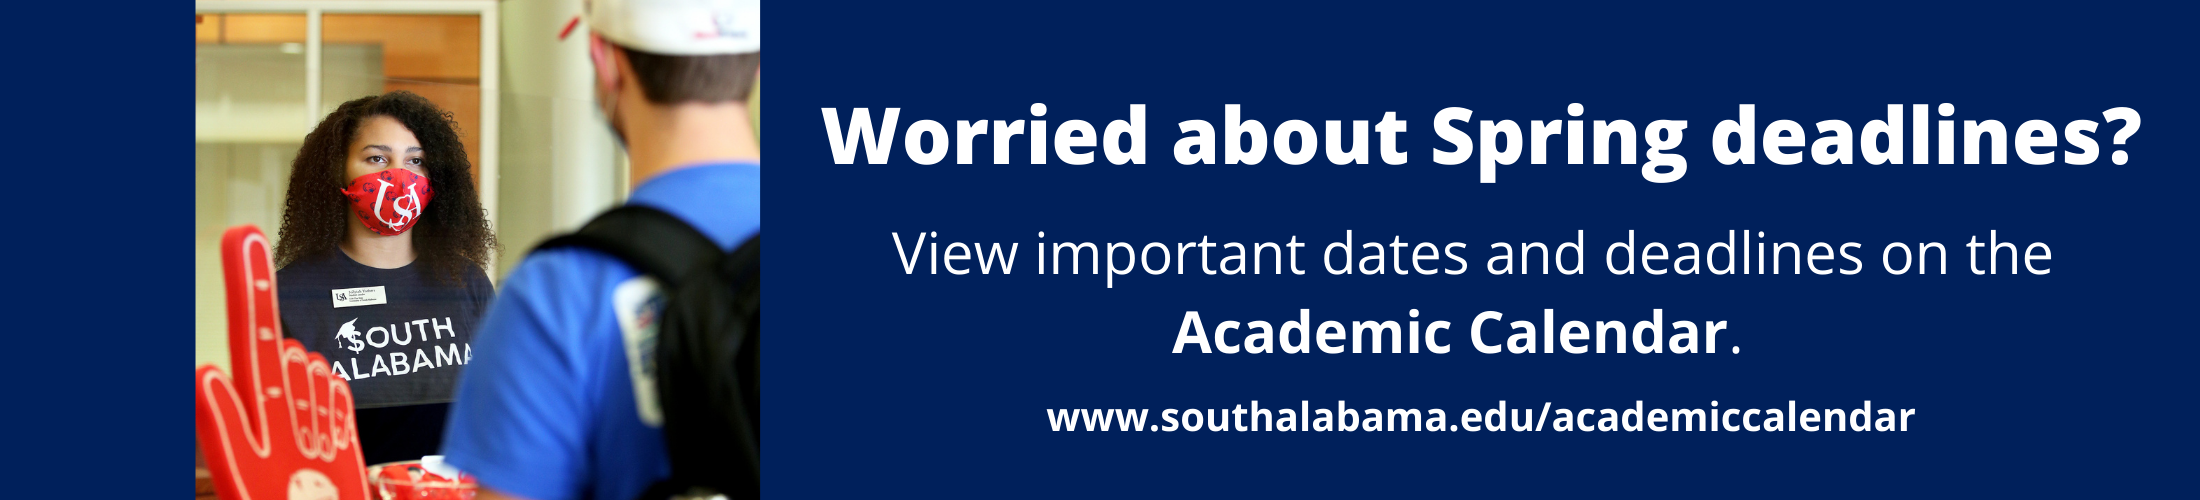 Worried about Spring deadlines? View important dates and deadlines on the Academic Calendar.